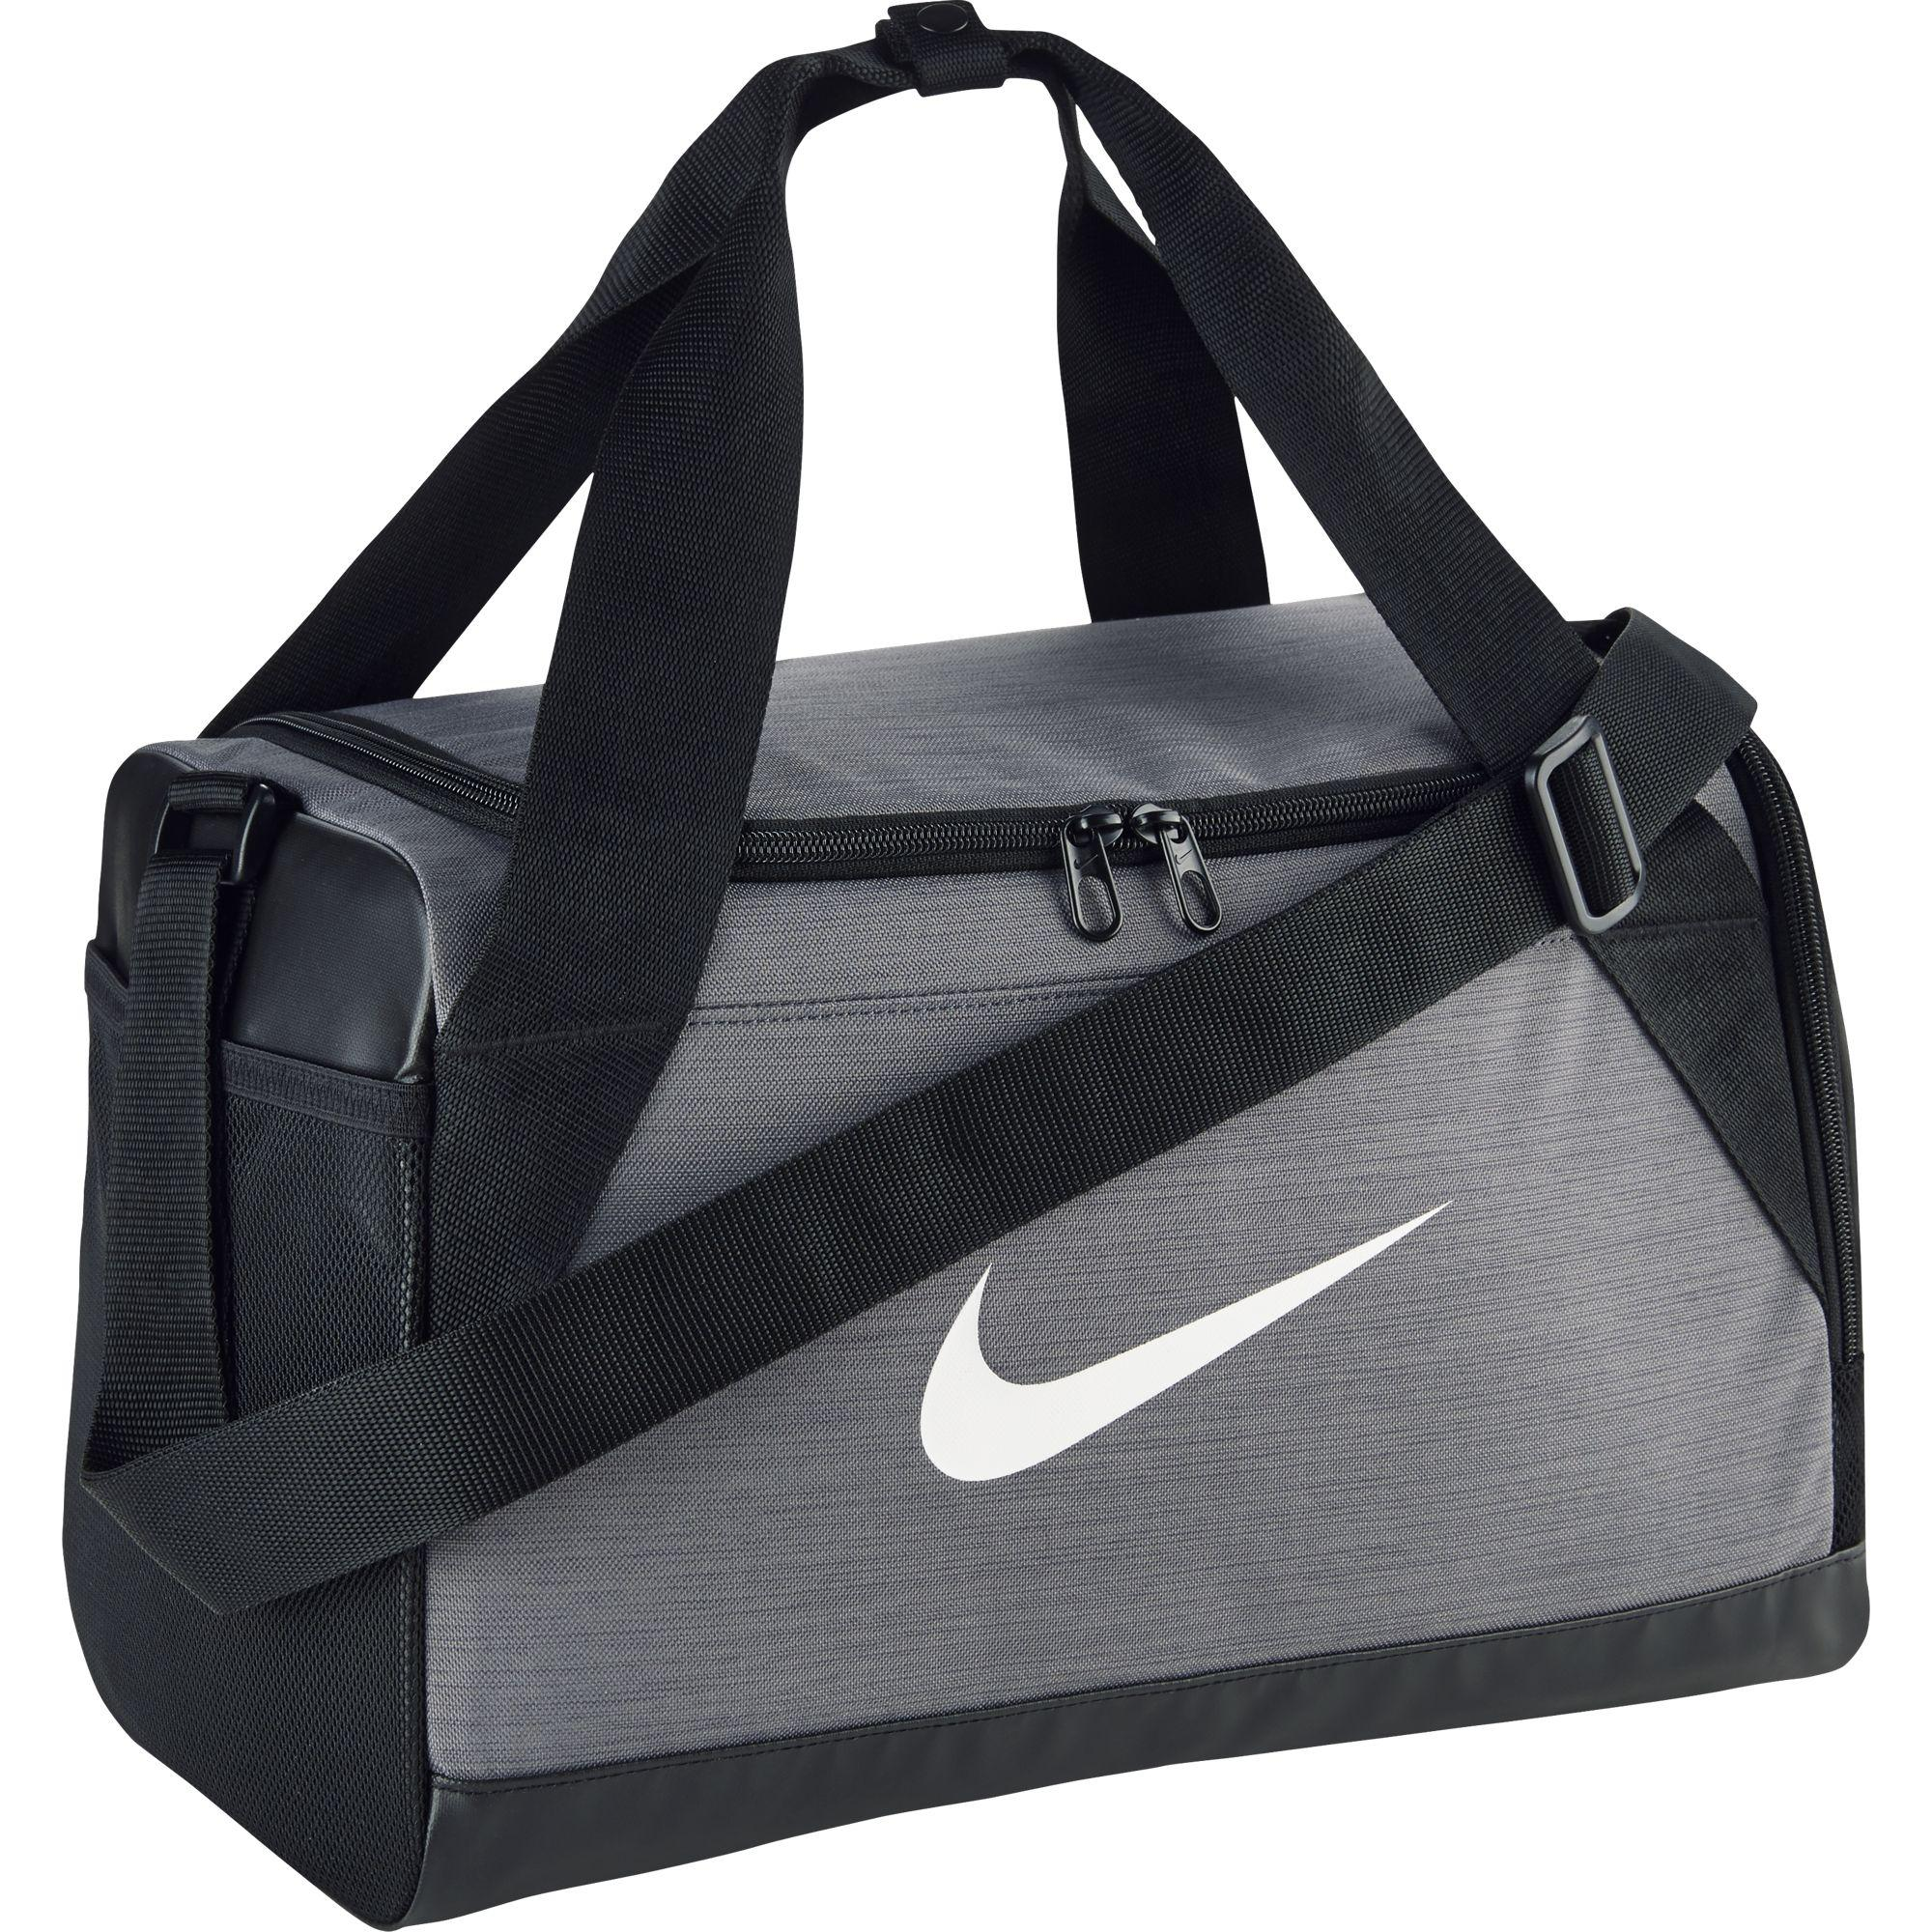 bf4436691afa Nike Brasilia Extra Small Training Duffel Bag - Flint Grey Black -  Tennisnuts.com